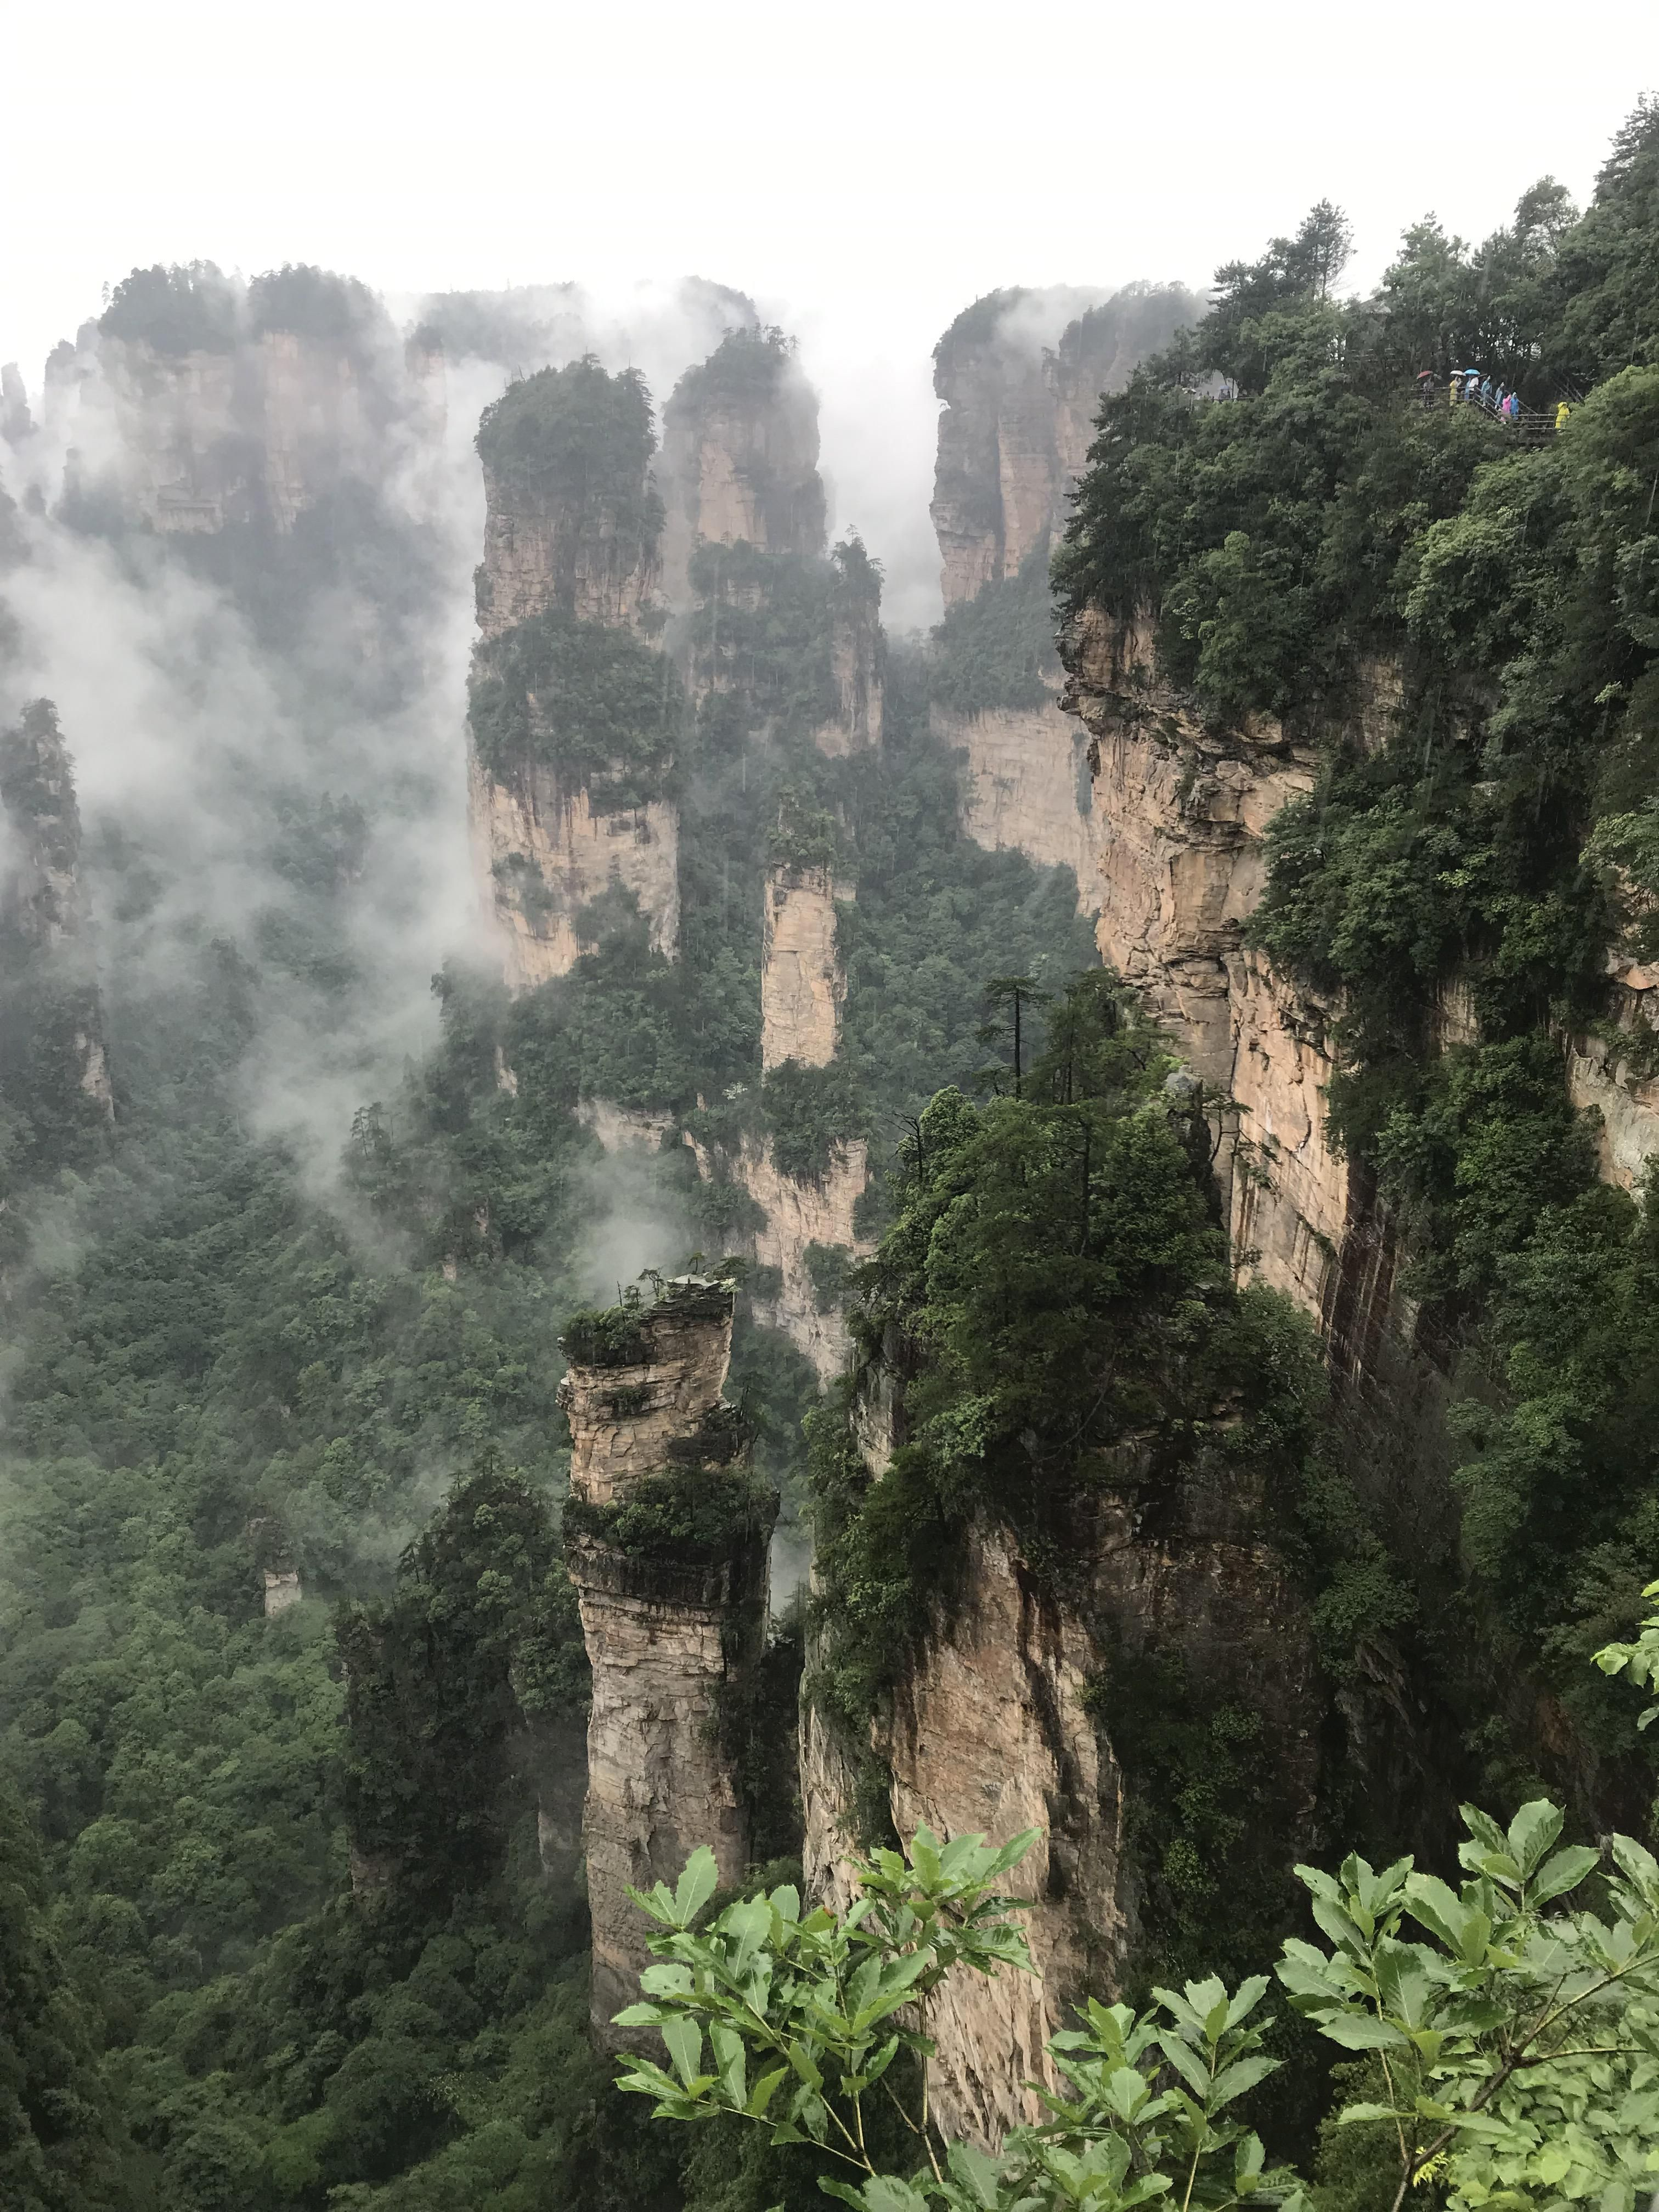 Zhangjiajie National Forest Park China. A rare moment